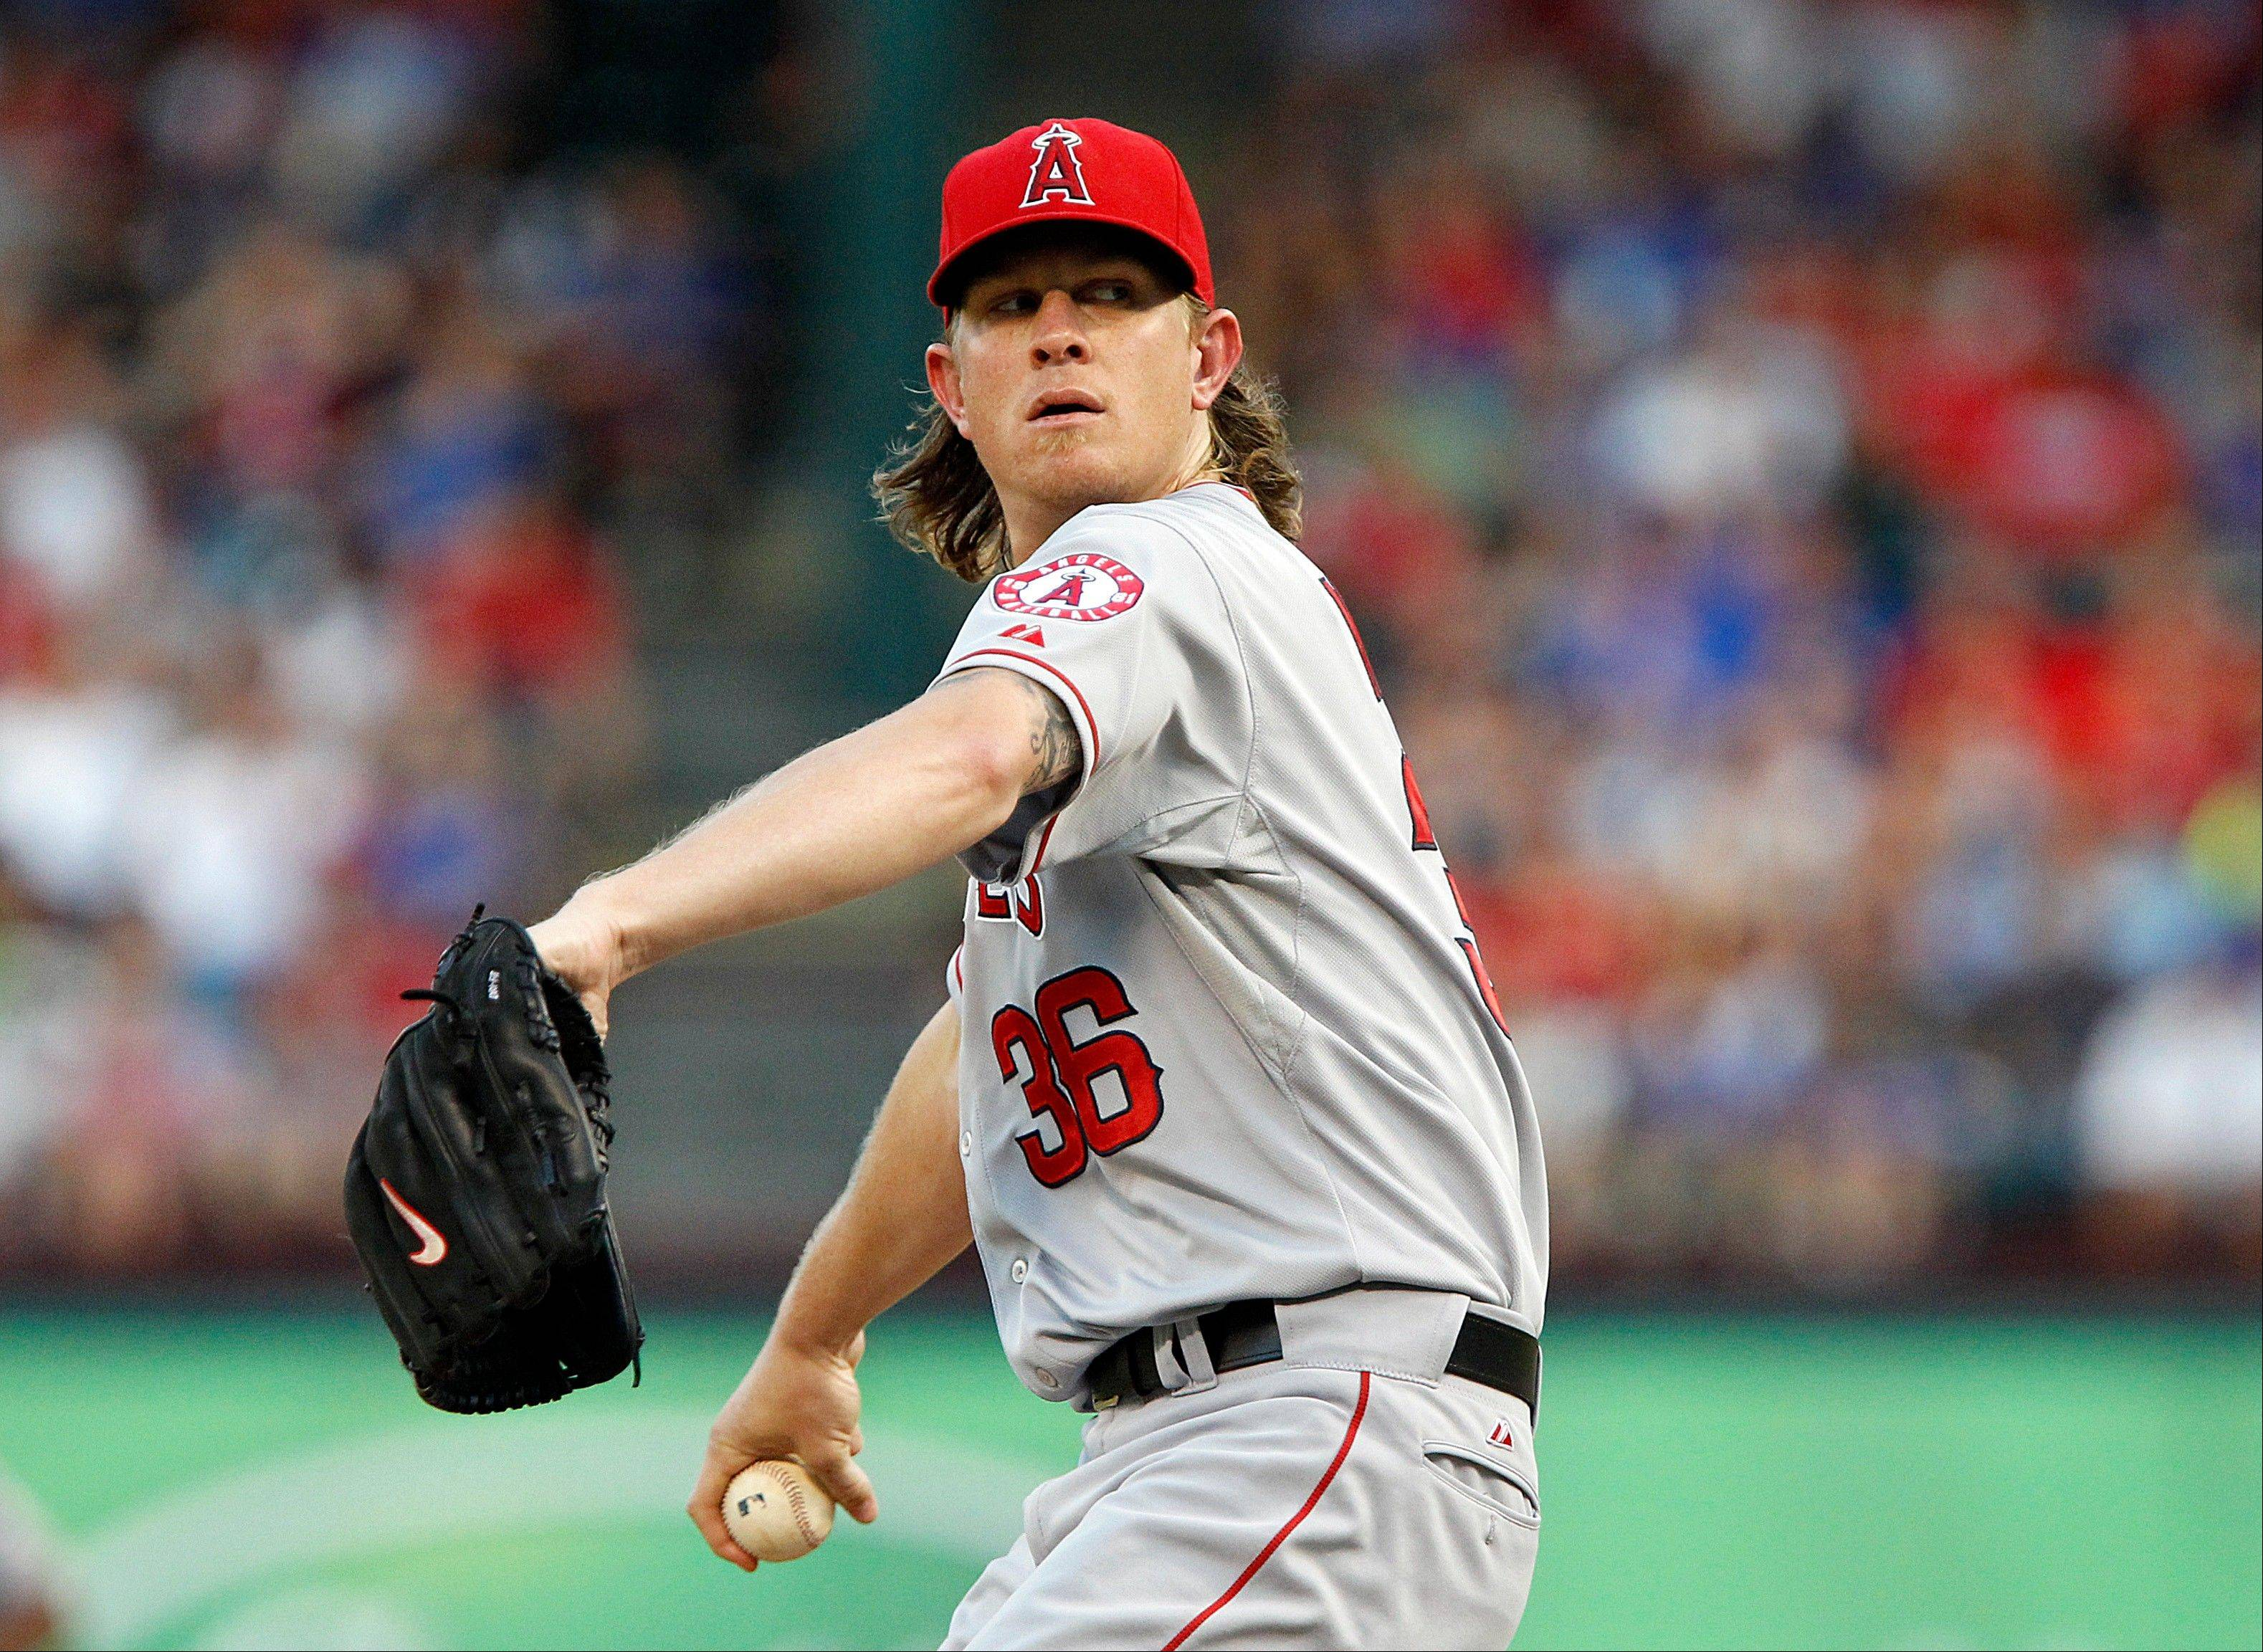 Angels starting pitcher Jered Weaver on Tuesday became just the eighth AL pitcher since 1921 to win at least six games without a loss in July.